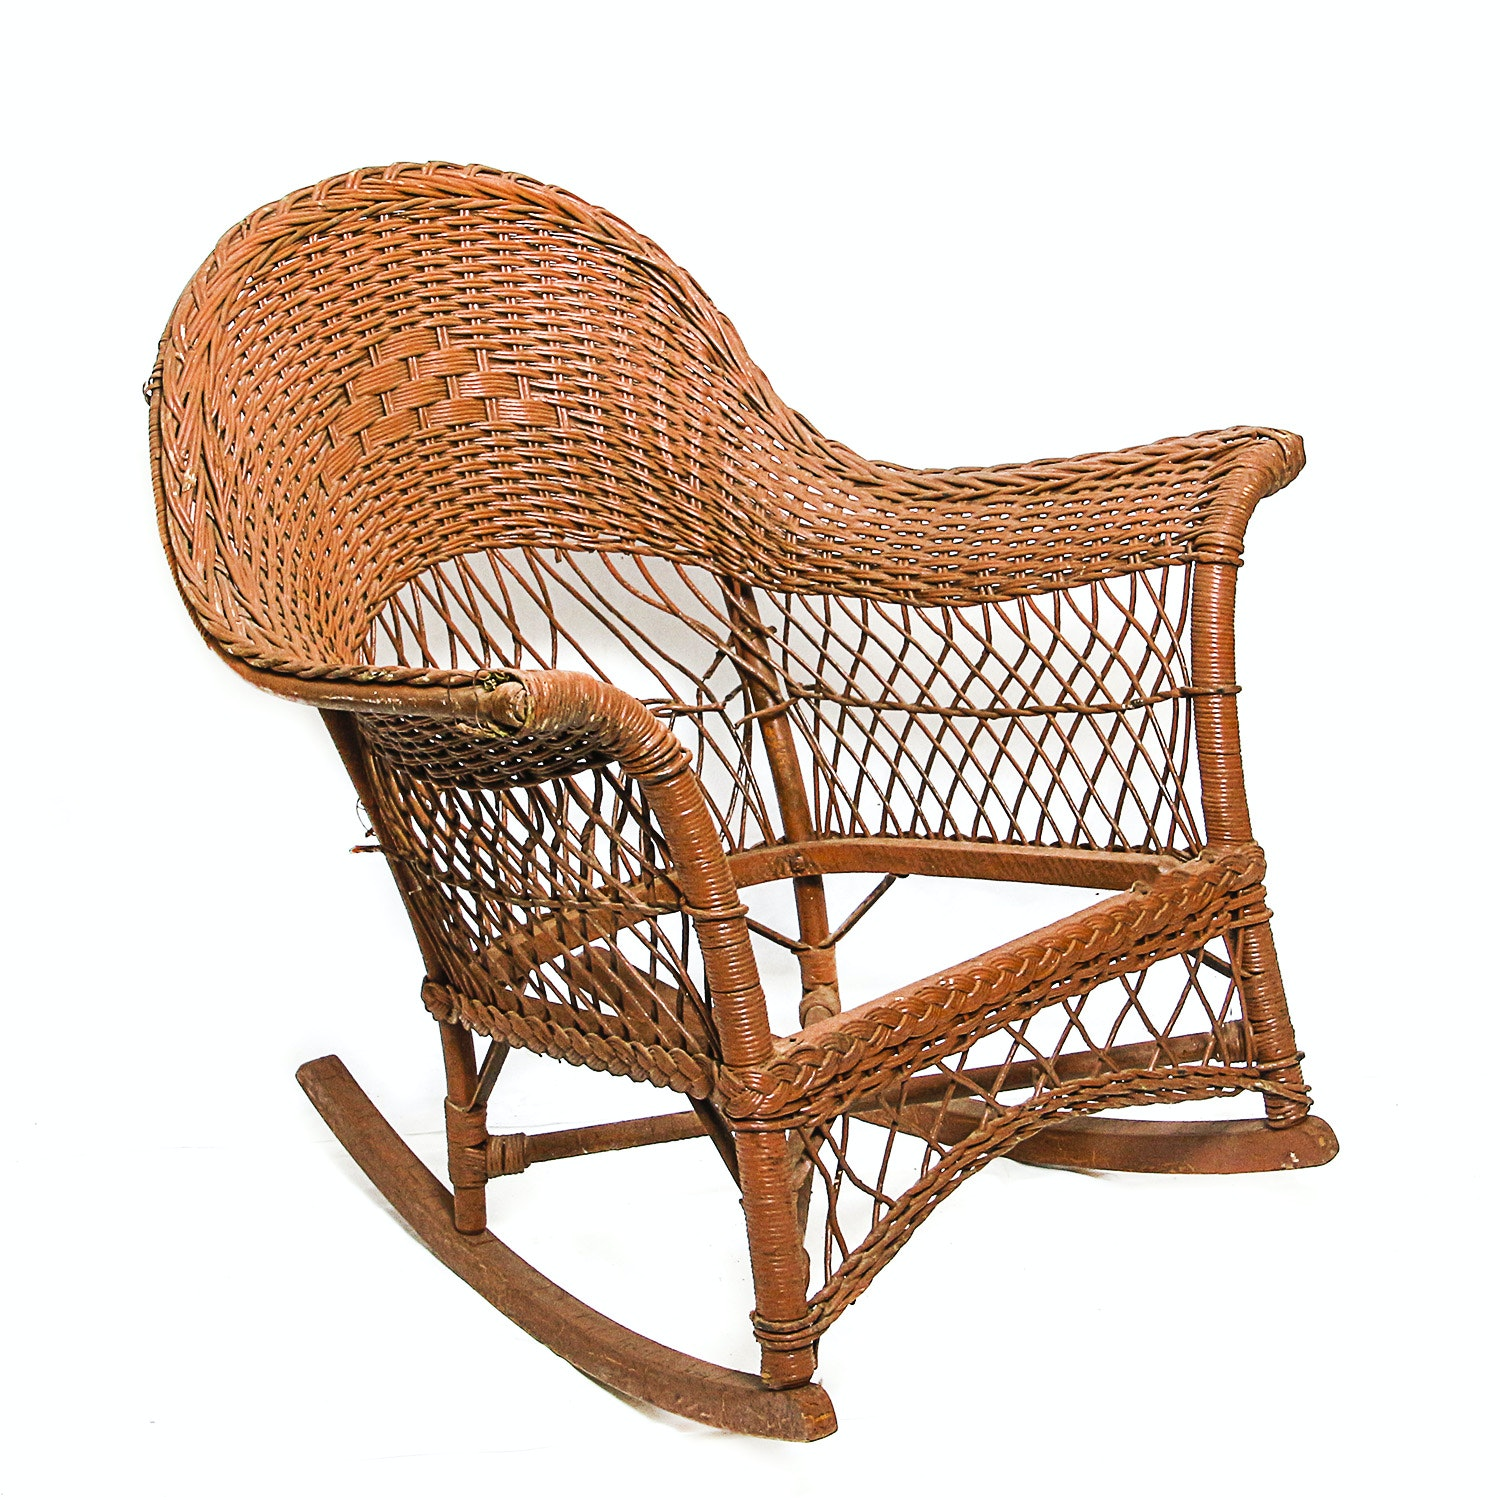 1920u0027s Savannah Wicker Rocking Chair ...